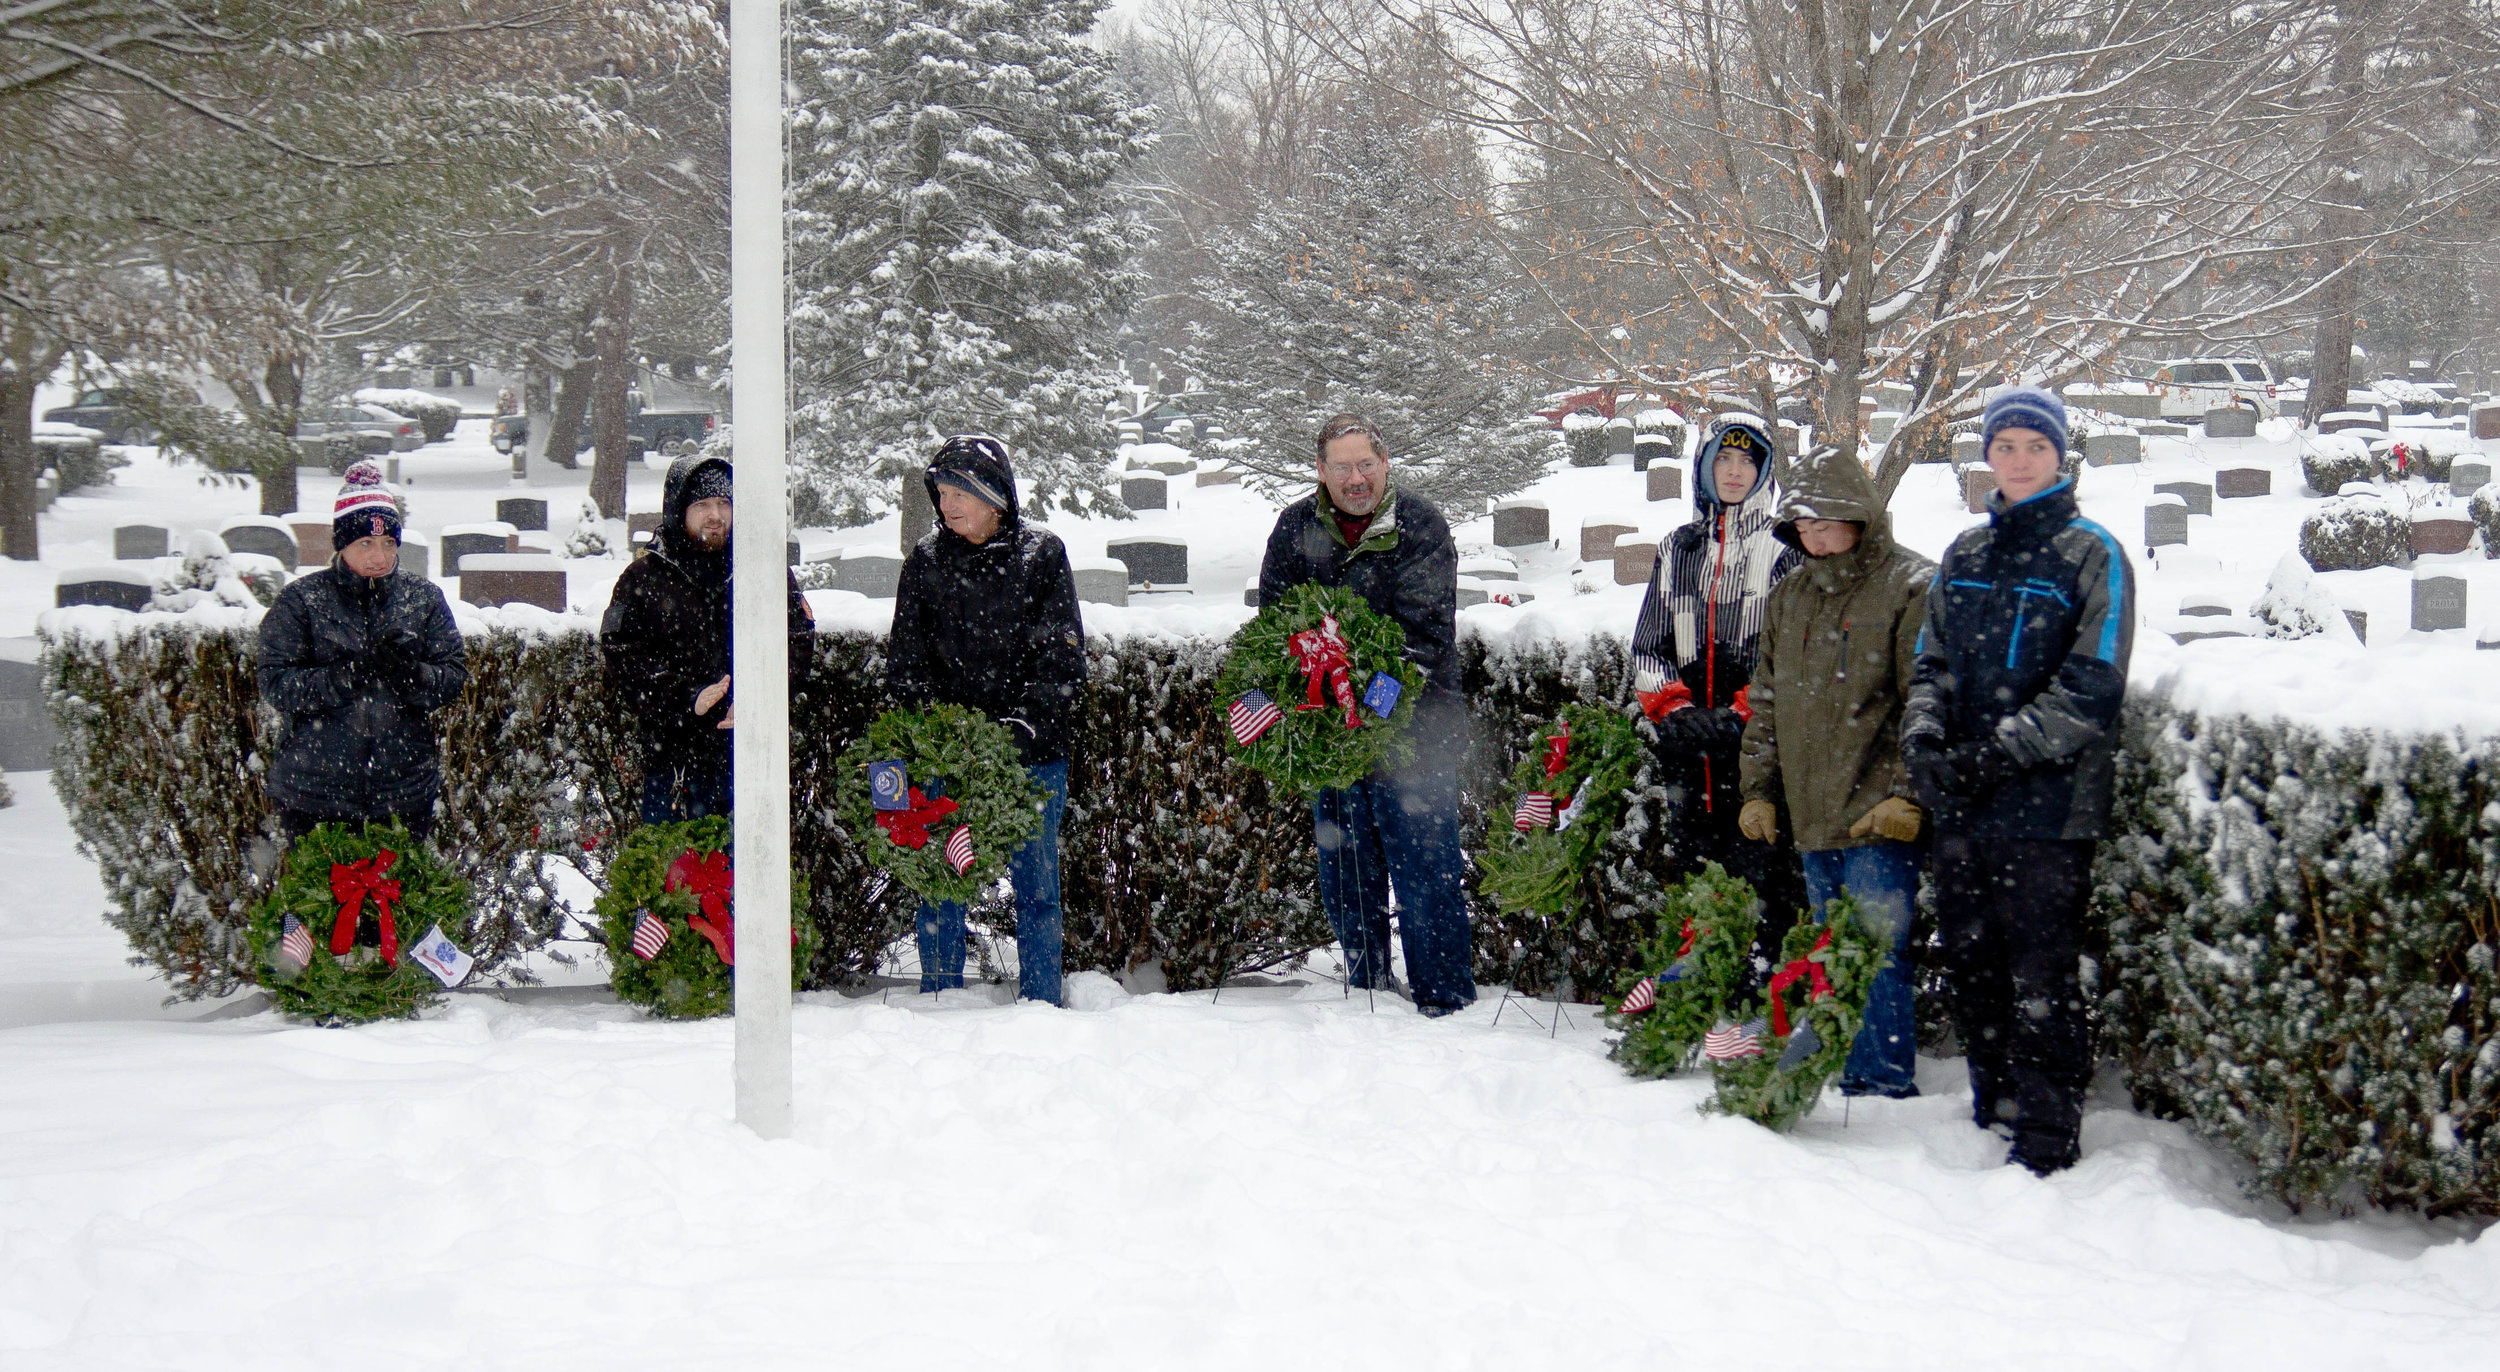 Despite a heavy snowfall volunteers participate in the National Wreaths Across America Day ceremony at Fairview Cemetery in Westford, Massachusetts.